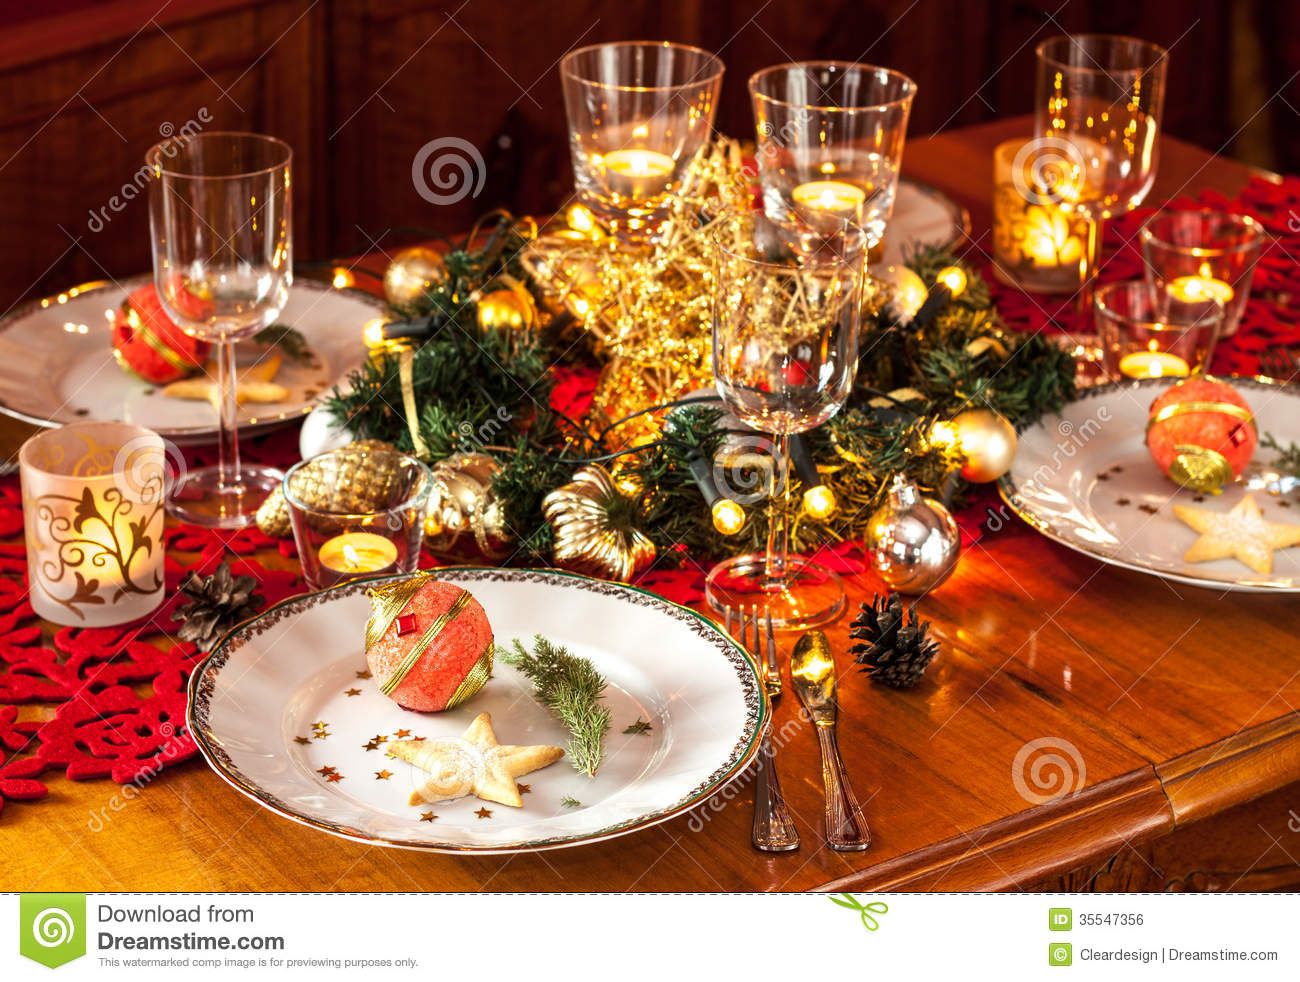 Christmas Eve Dinner Party Table Setting With Decorations Stock